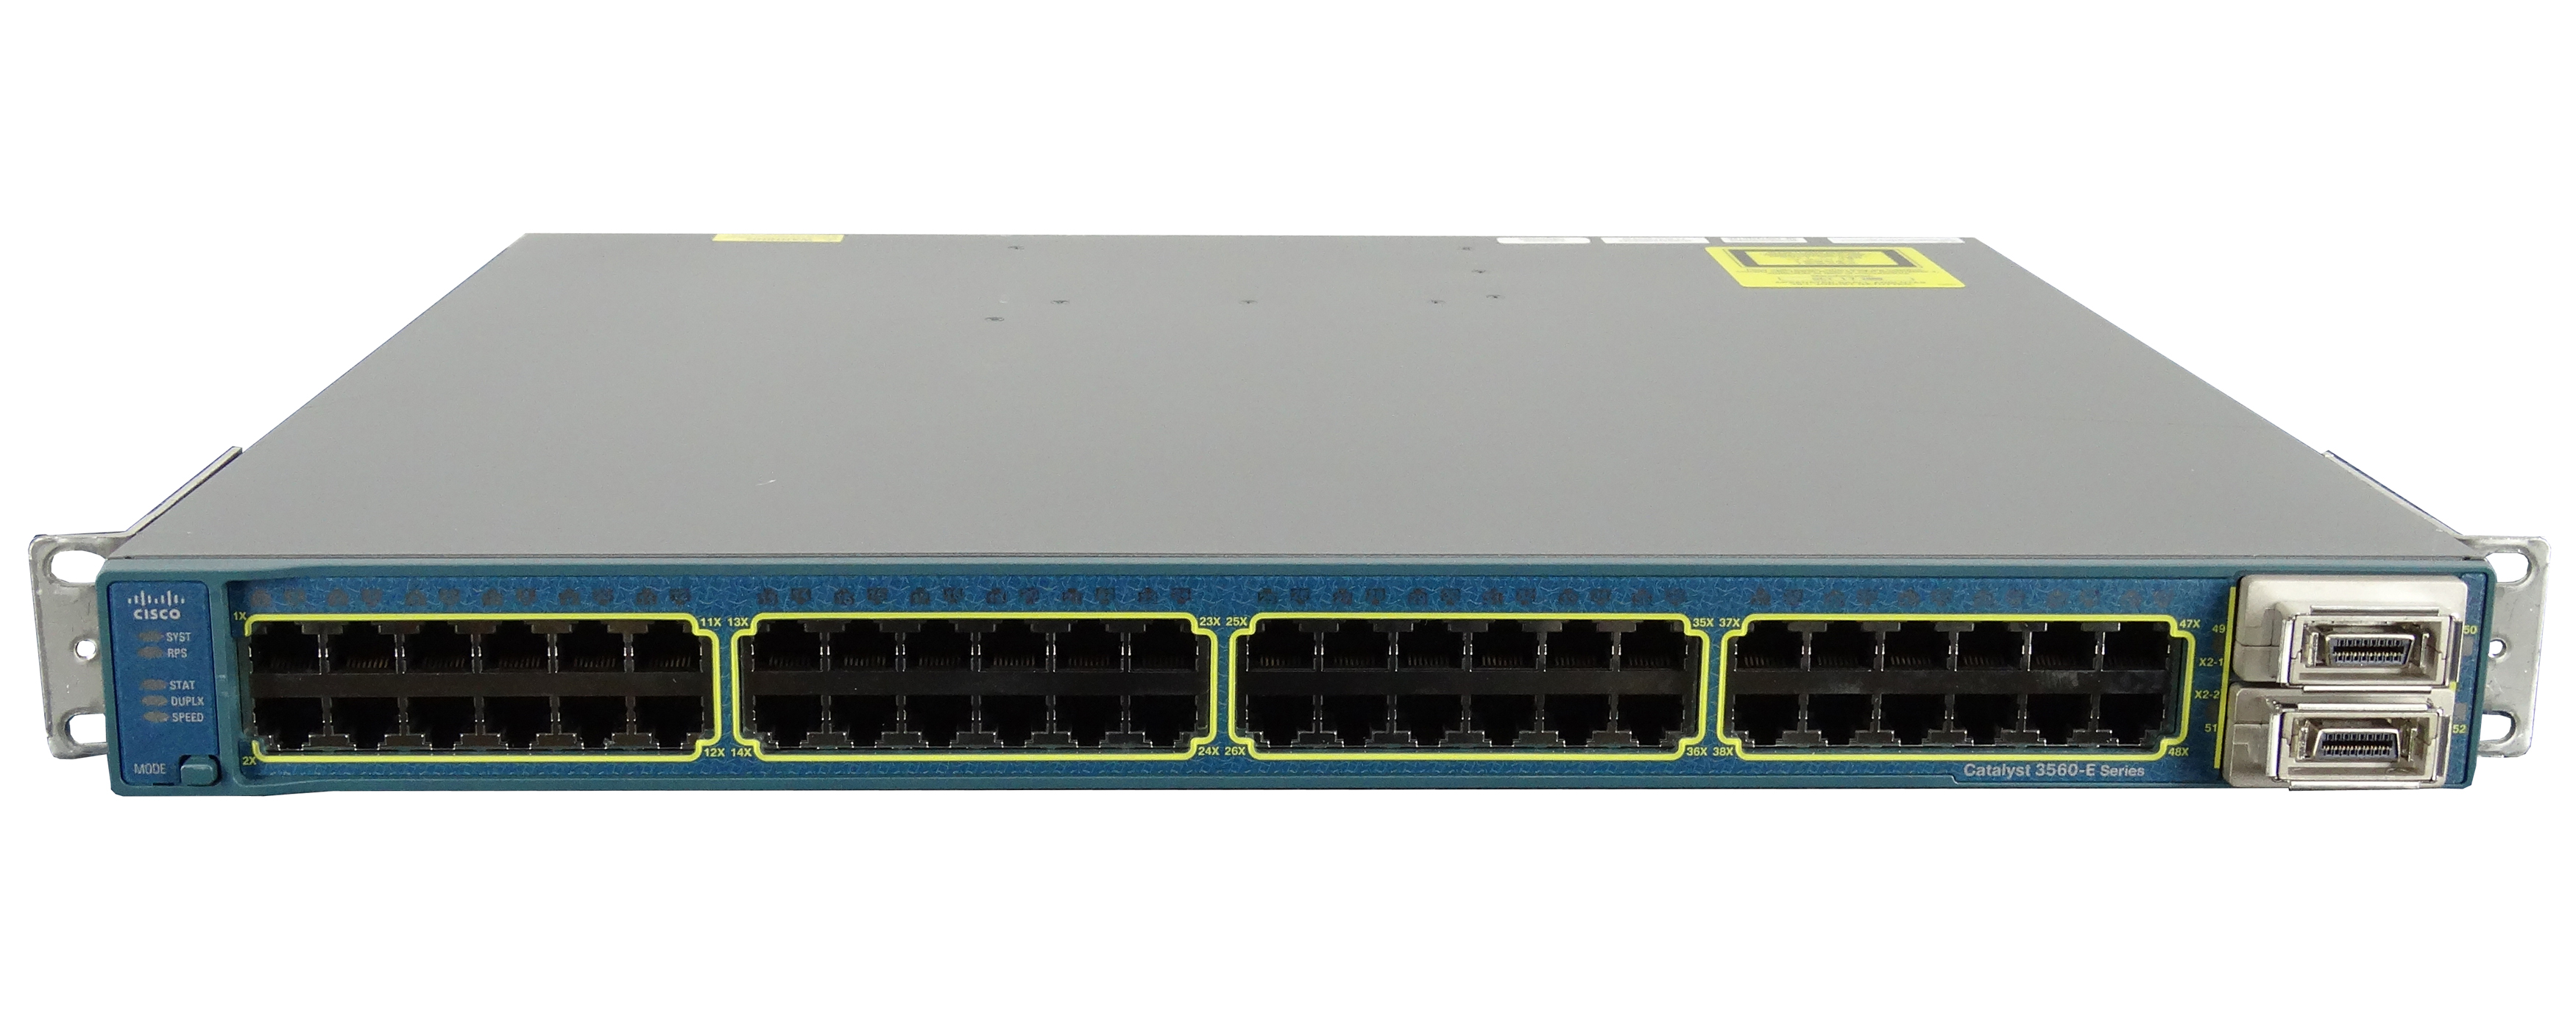 Cisco 3560E 48-Port Gigabit Ethernet Switch W/ 2x X2-10GB-CX4 | MET Servers